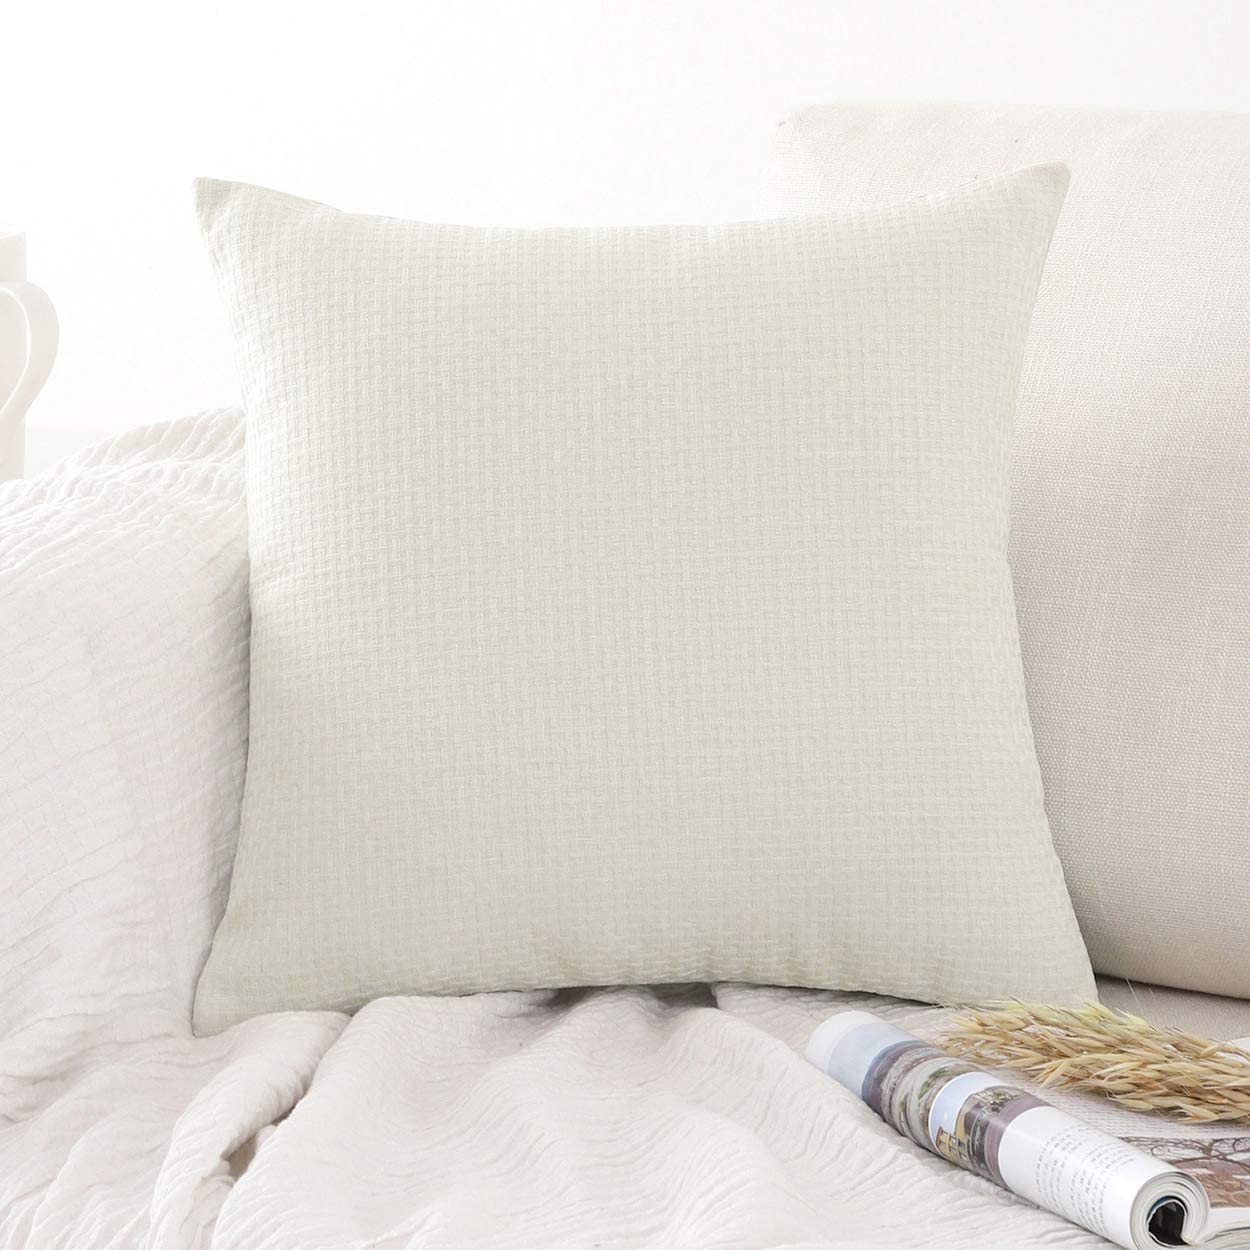 Jepeak Comfy Cotton Linen Throw Pillow Cover Rattan Weaved Pattern Cushion Case, Solid Thickened Farmhouse Modern Decorative Square Pillow Case for Sofa Couch Bed (Cream, 24 x 24 Inches)